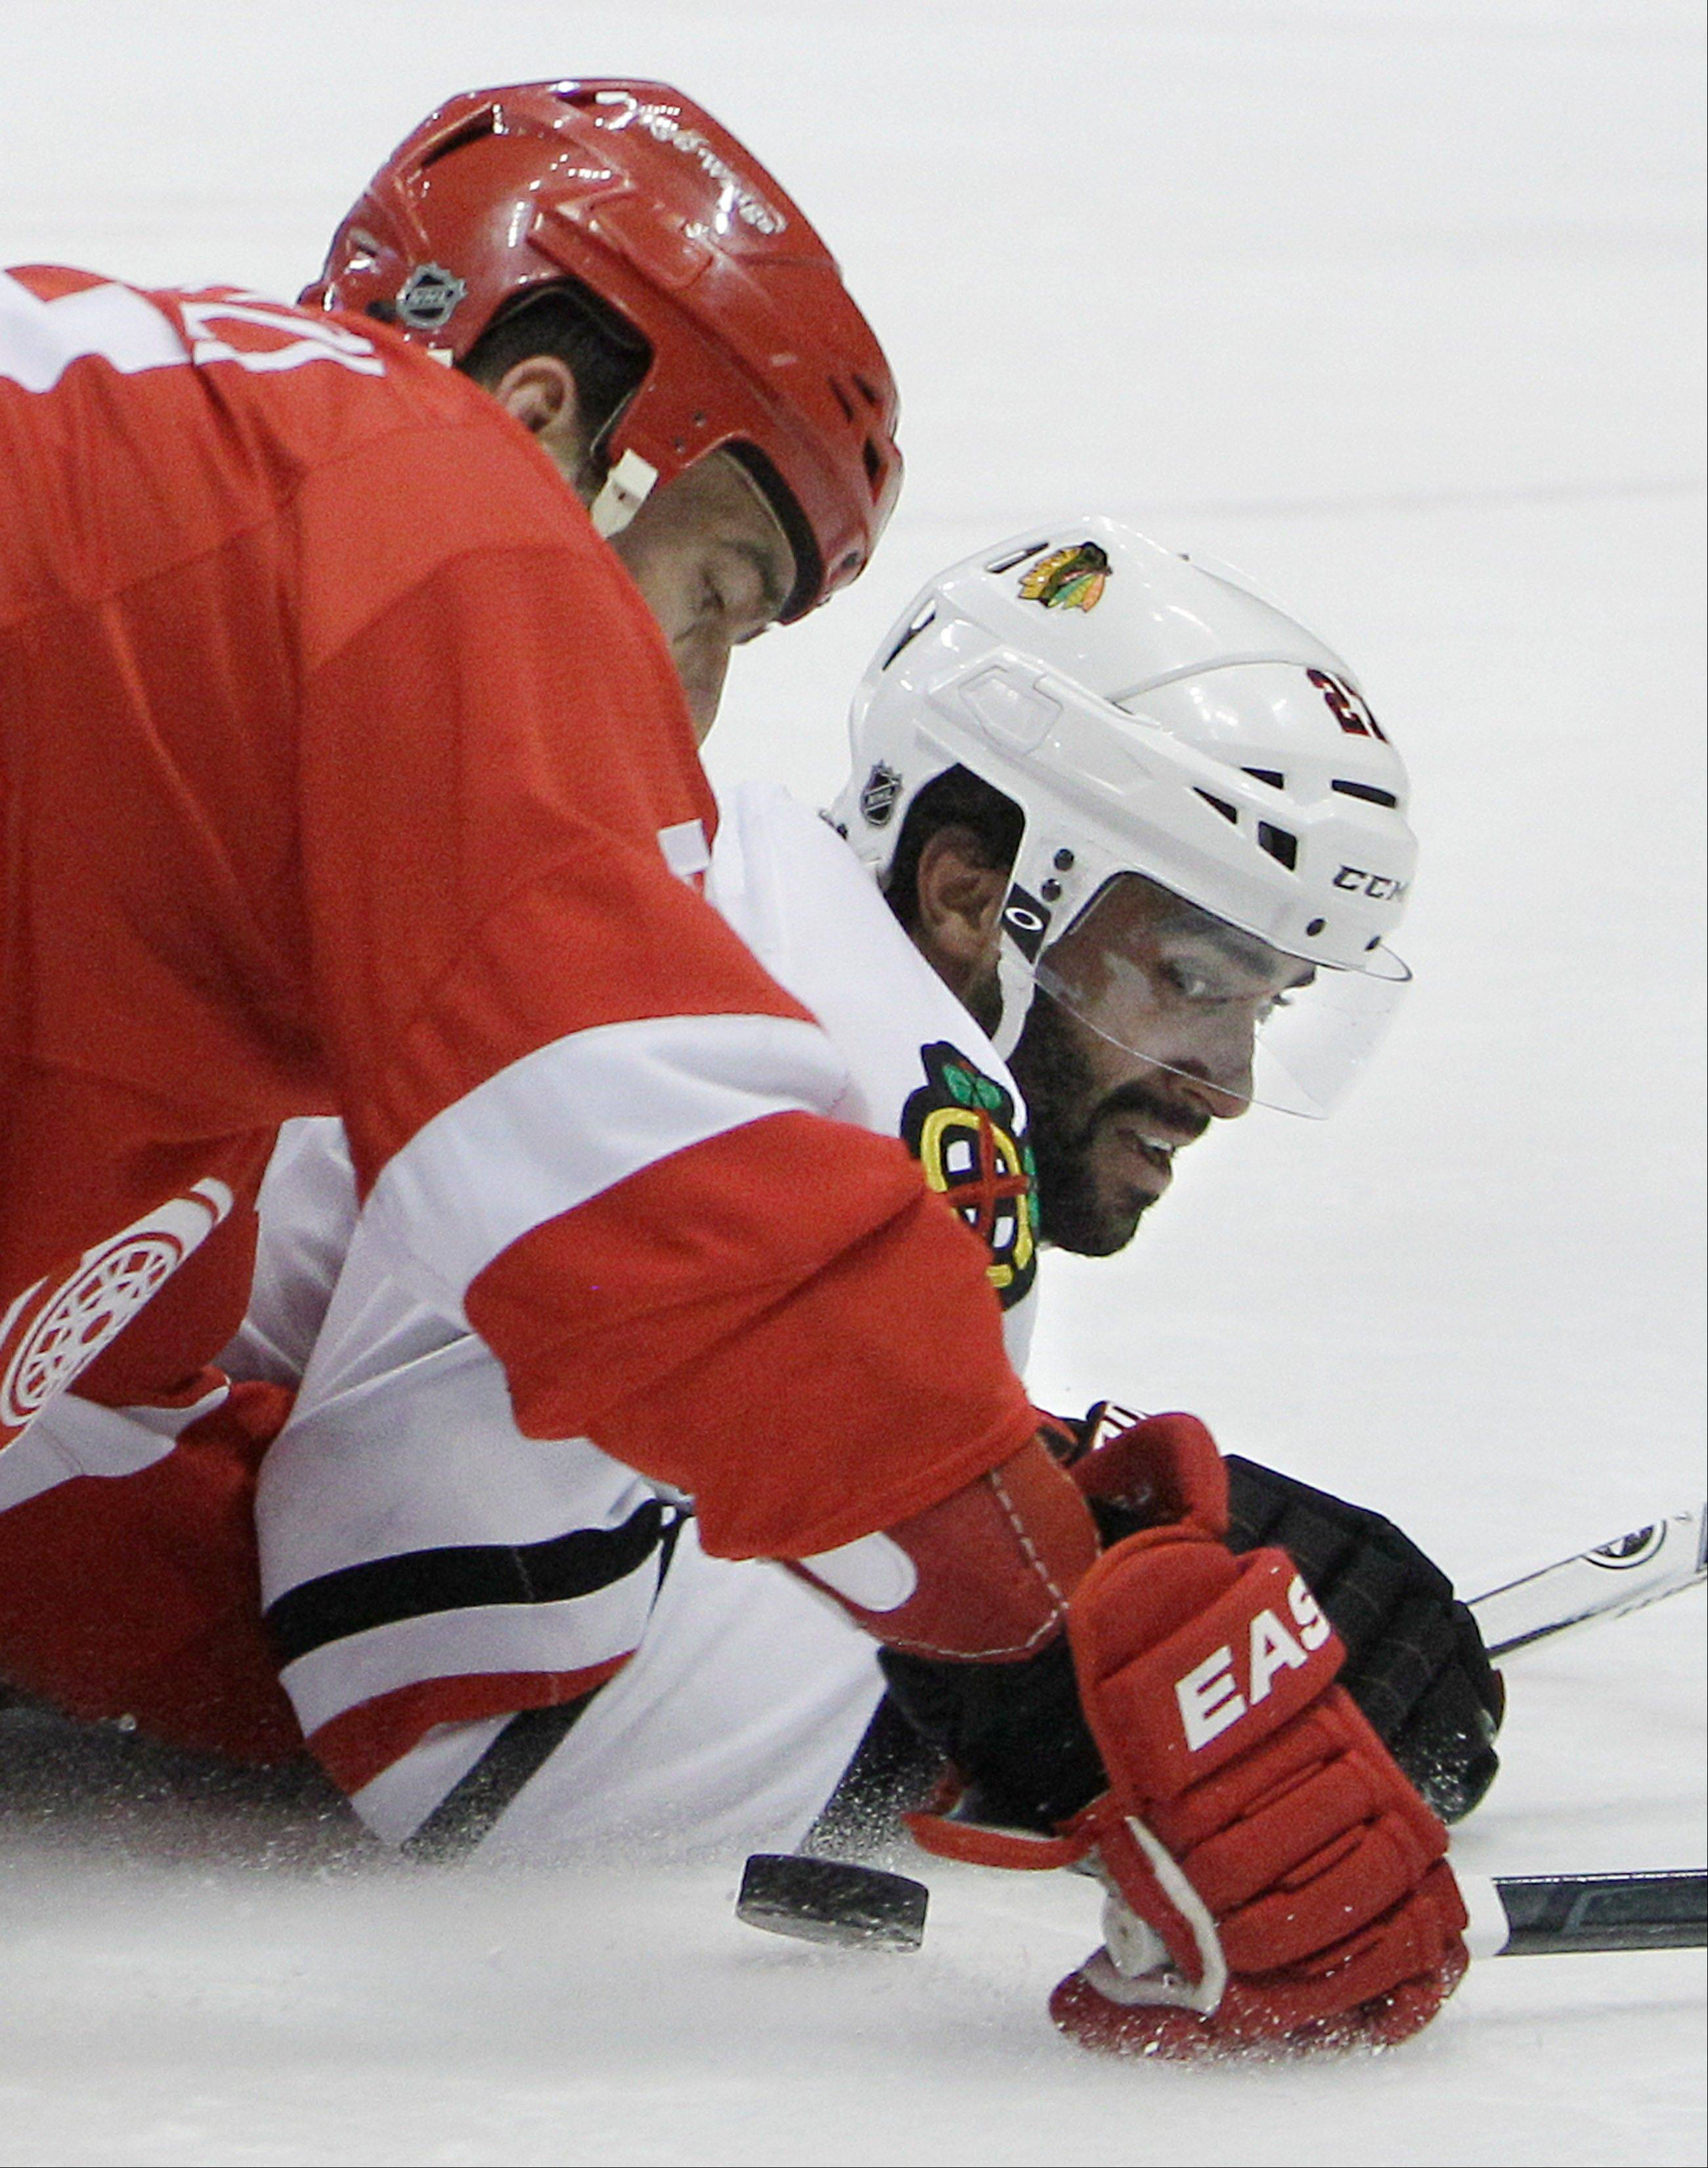 Detroit Red Wings right wing Todd Bertuzzi (44) and Chicago Blackhawks defenseman Johnny Oduya (27) of Sweden eye the puck during the third period of an NHL hockey game in Detroit, Sunday, March 4, 2012.